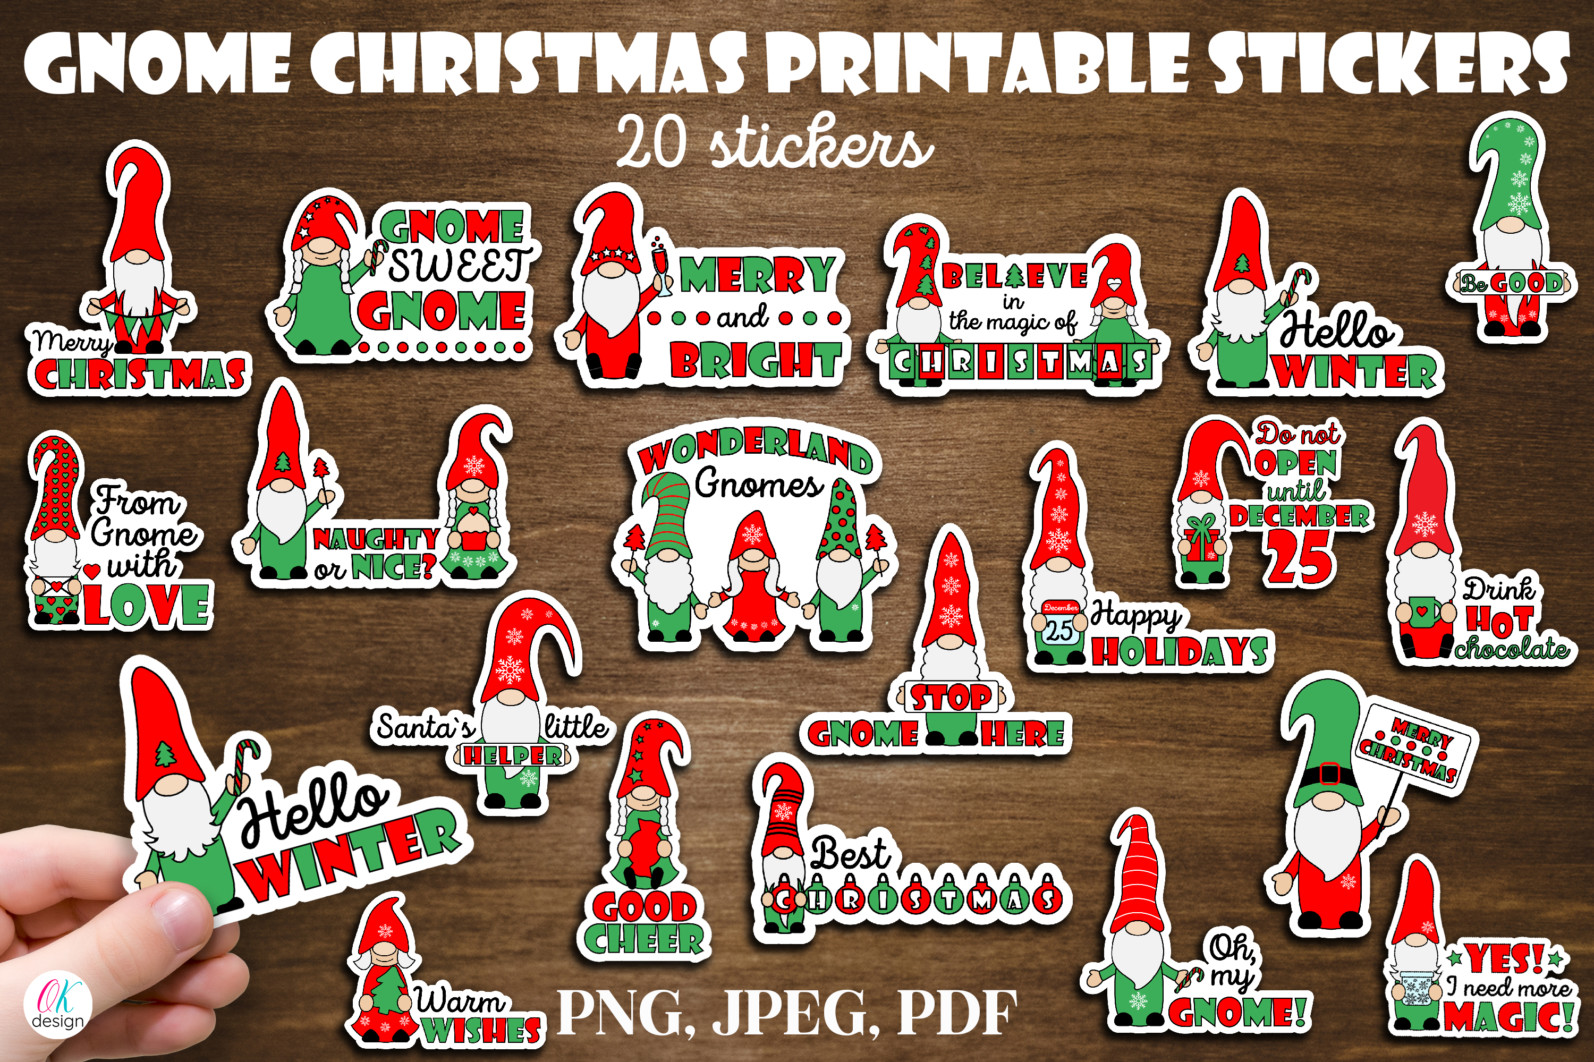 Christmas bundle Vol. 1. Christmas stickers. Christmas SVG bundle. - 19 Gnome Christmas bundle Christmas gnome sublimation Christmas stickers gnome Christmas stickers Christmas gnome stickers Gnome stickers print and cut stickers scaled -